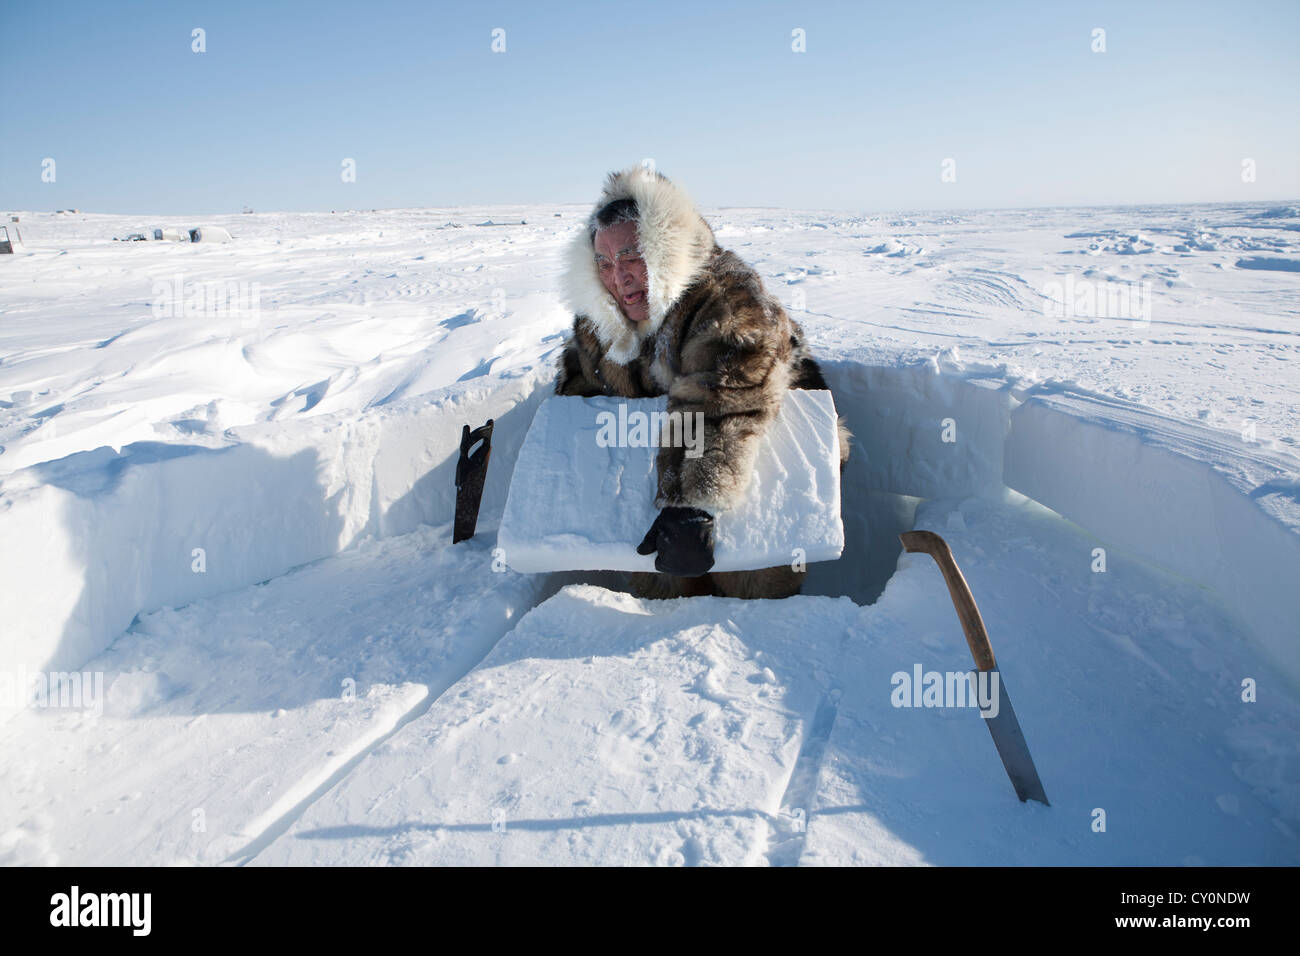 building an iglo on the north pole - Stock Image